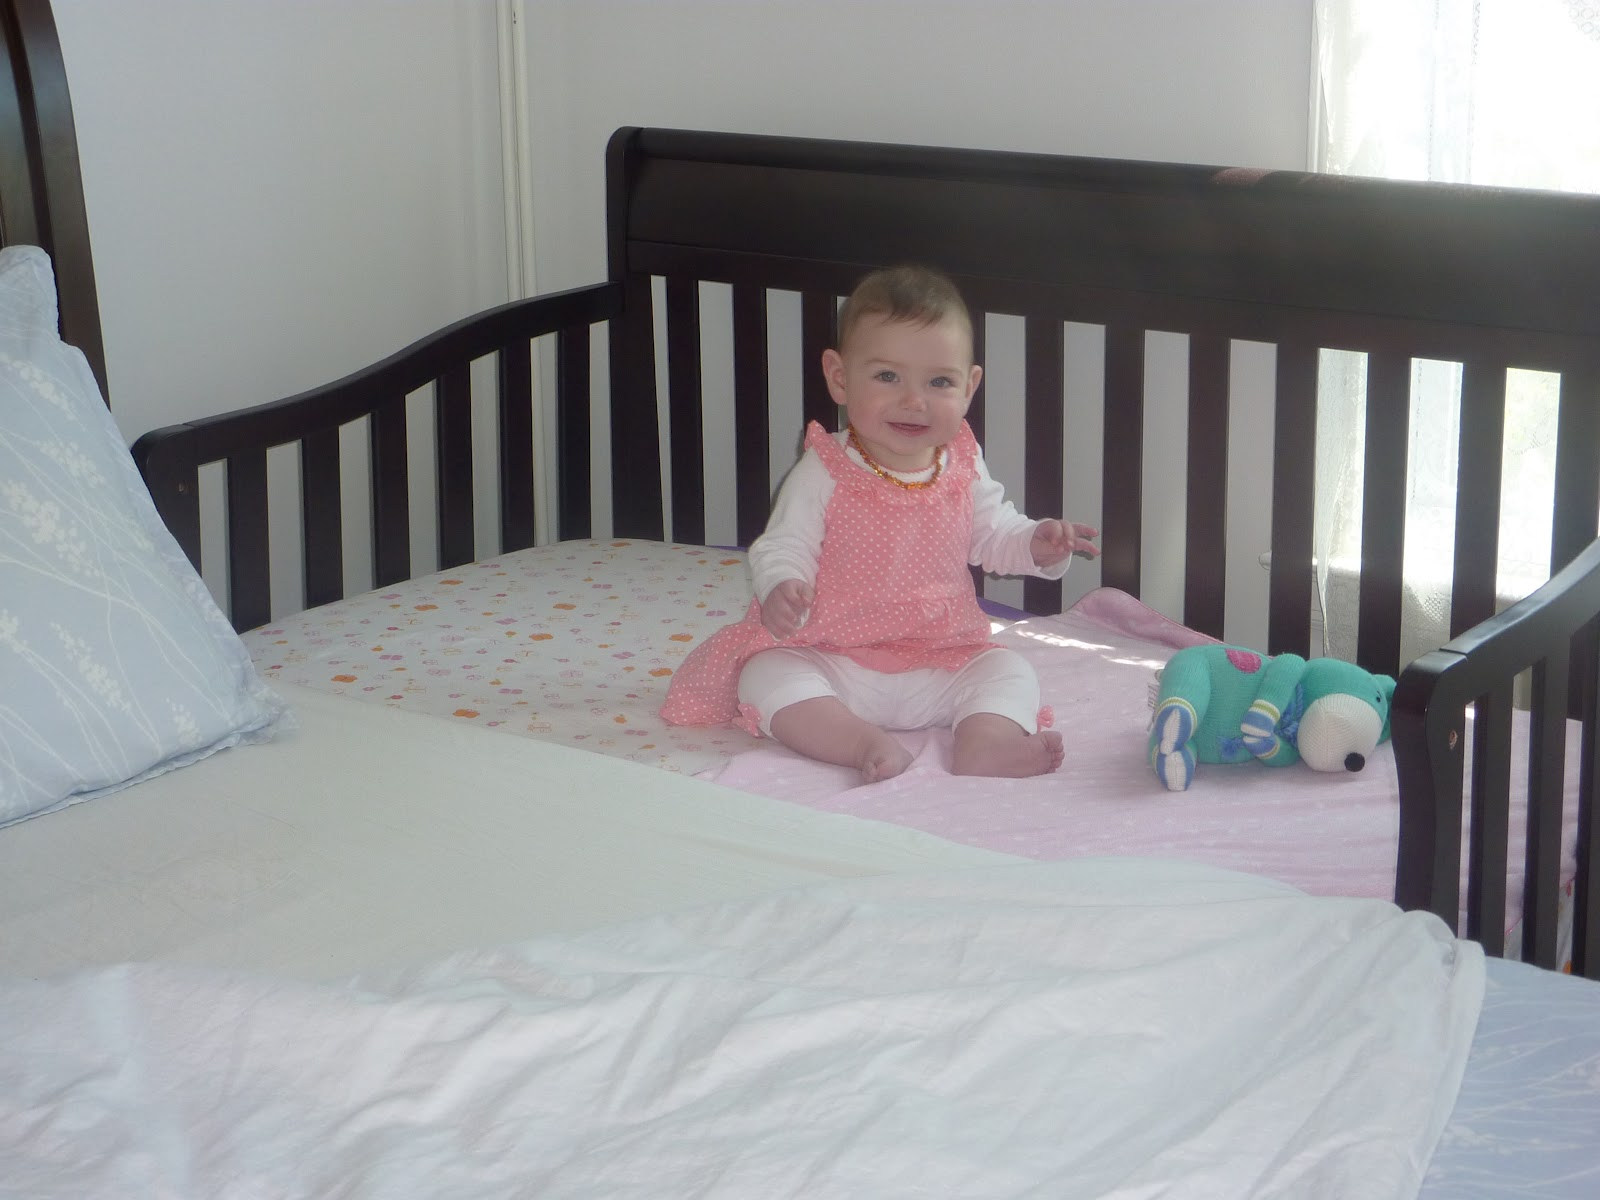 Sidecar Crib Sheet : Crib that connects to bed connected mommys